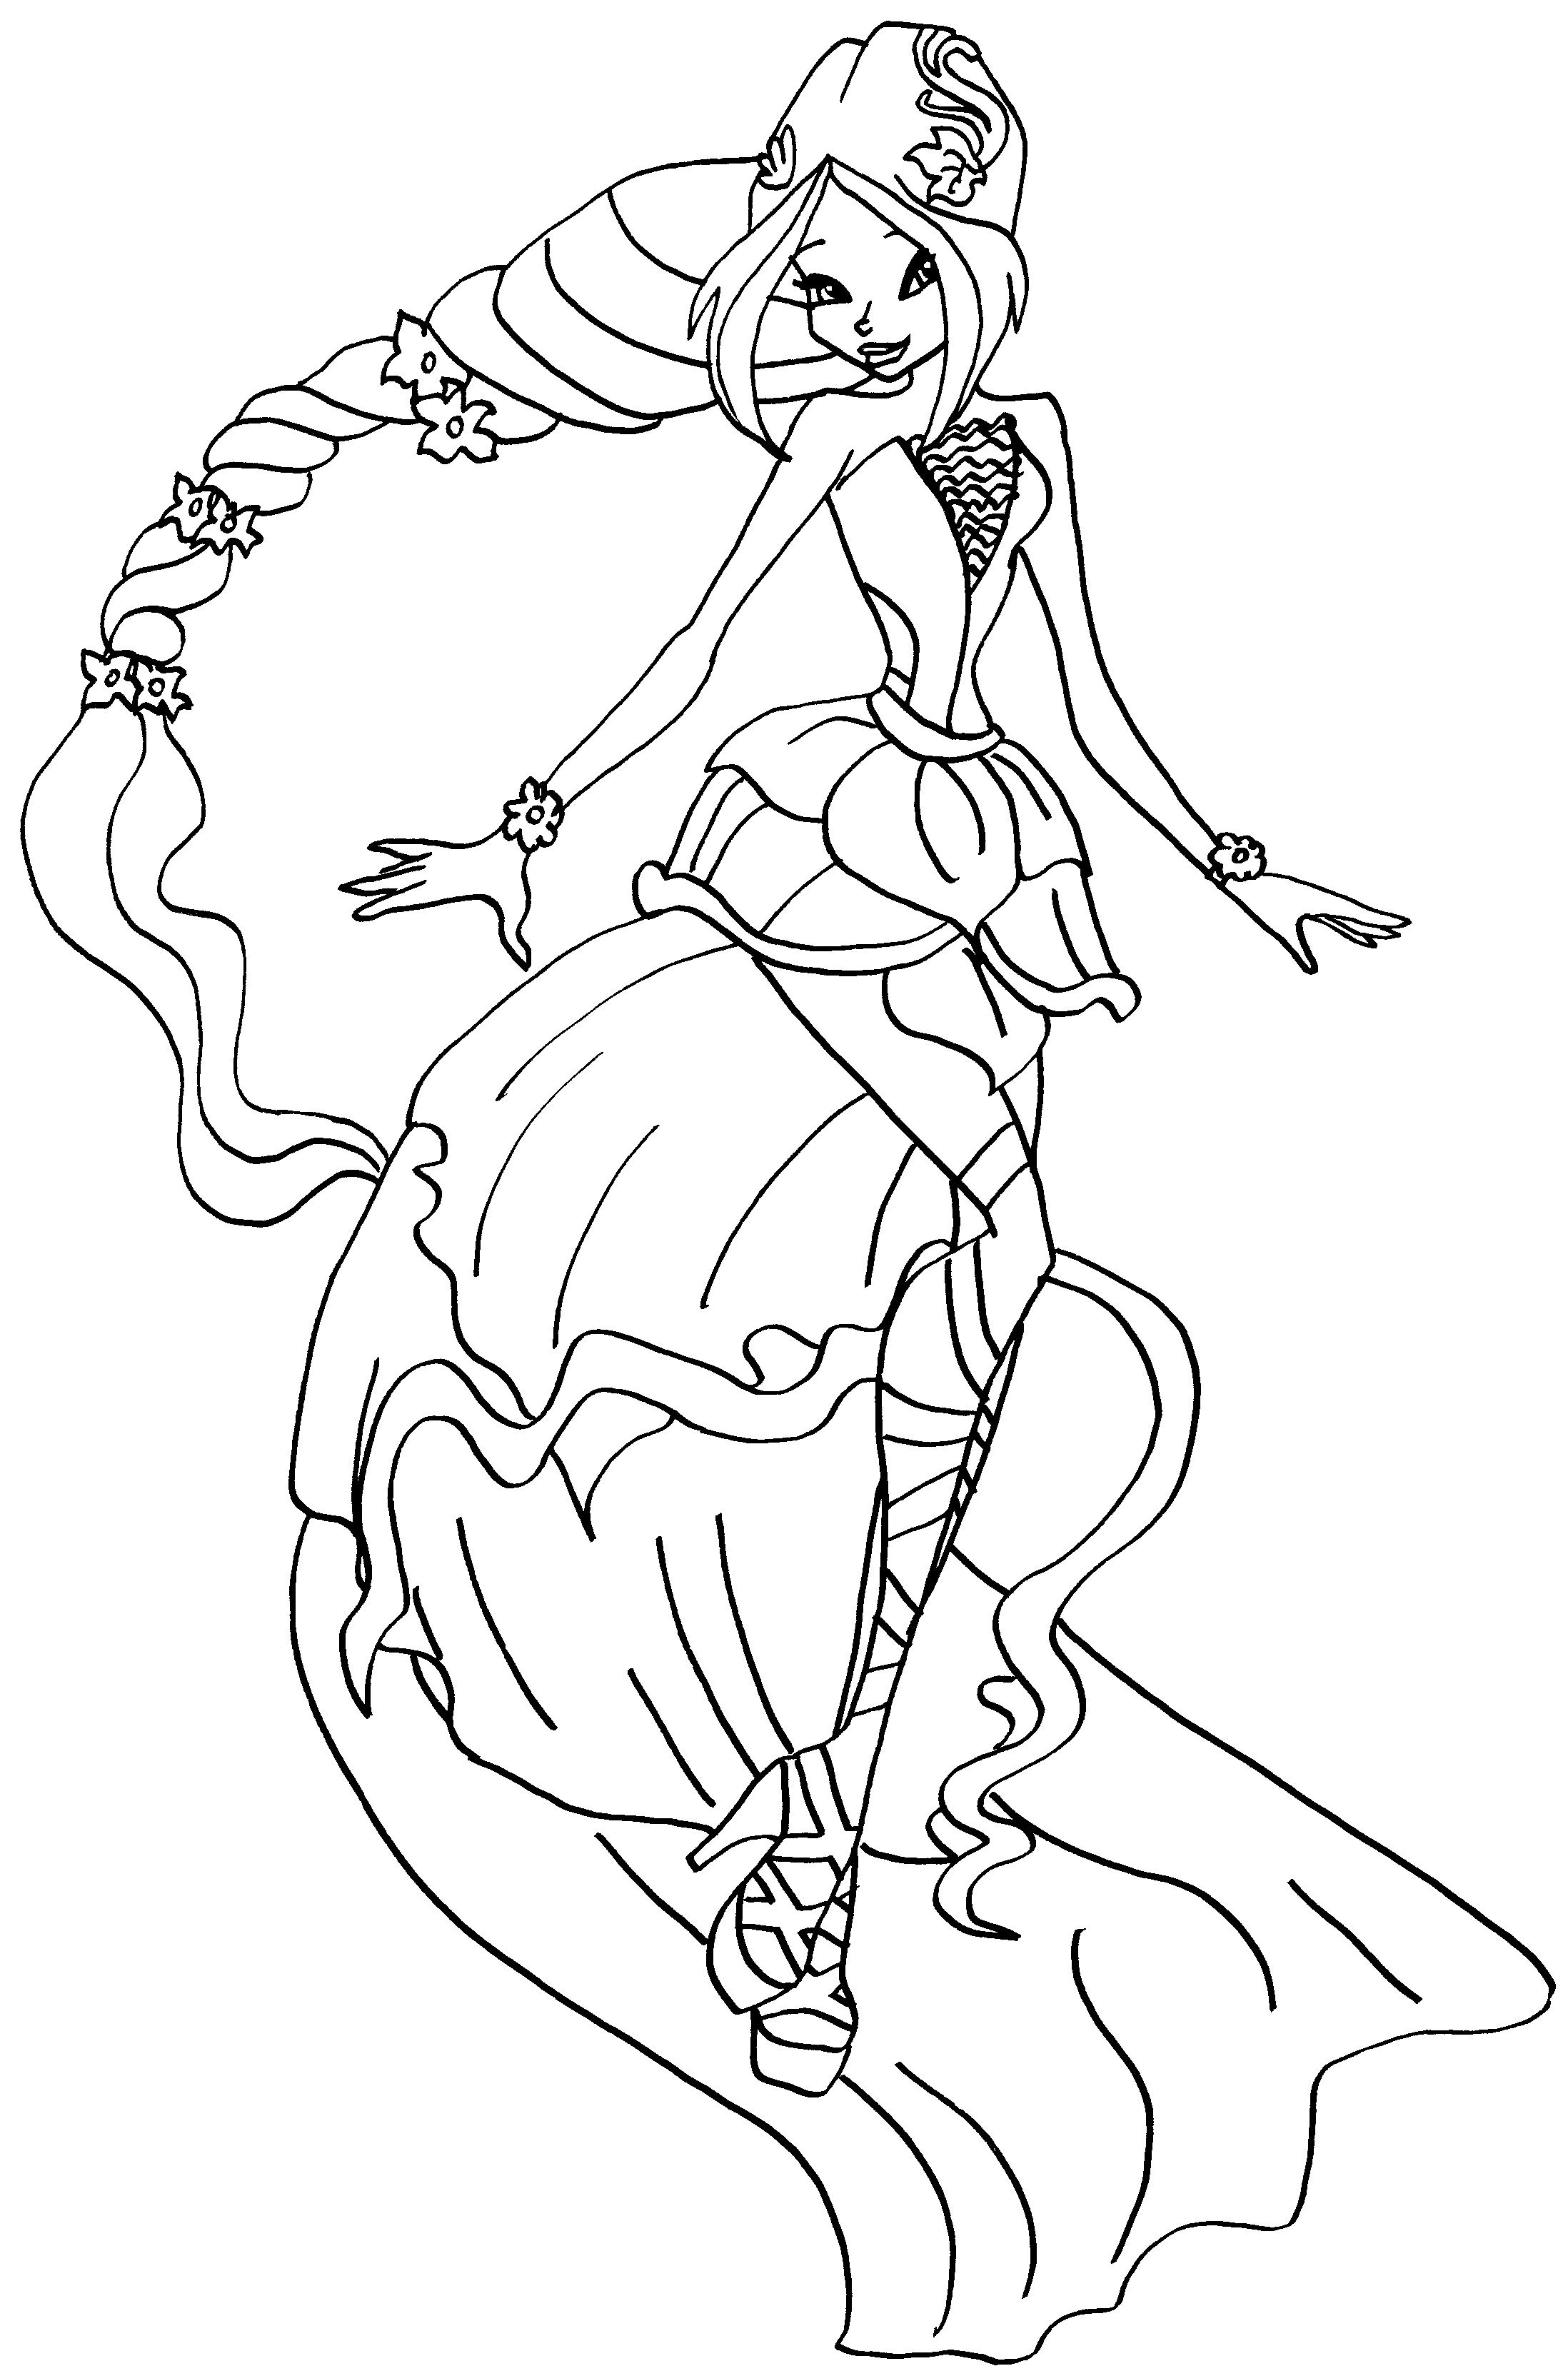 Winx Princess Coloring Pages Princess Coloring Pages Coloring Pages Fairy Coloring Pages